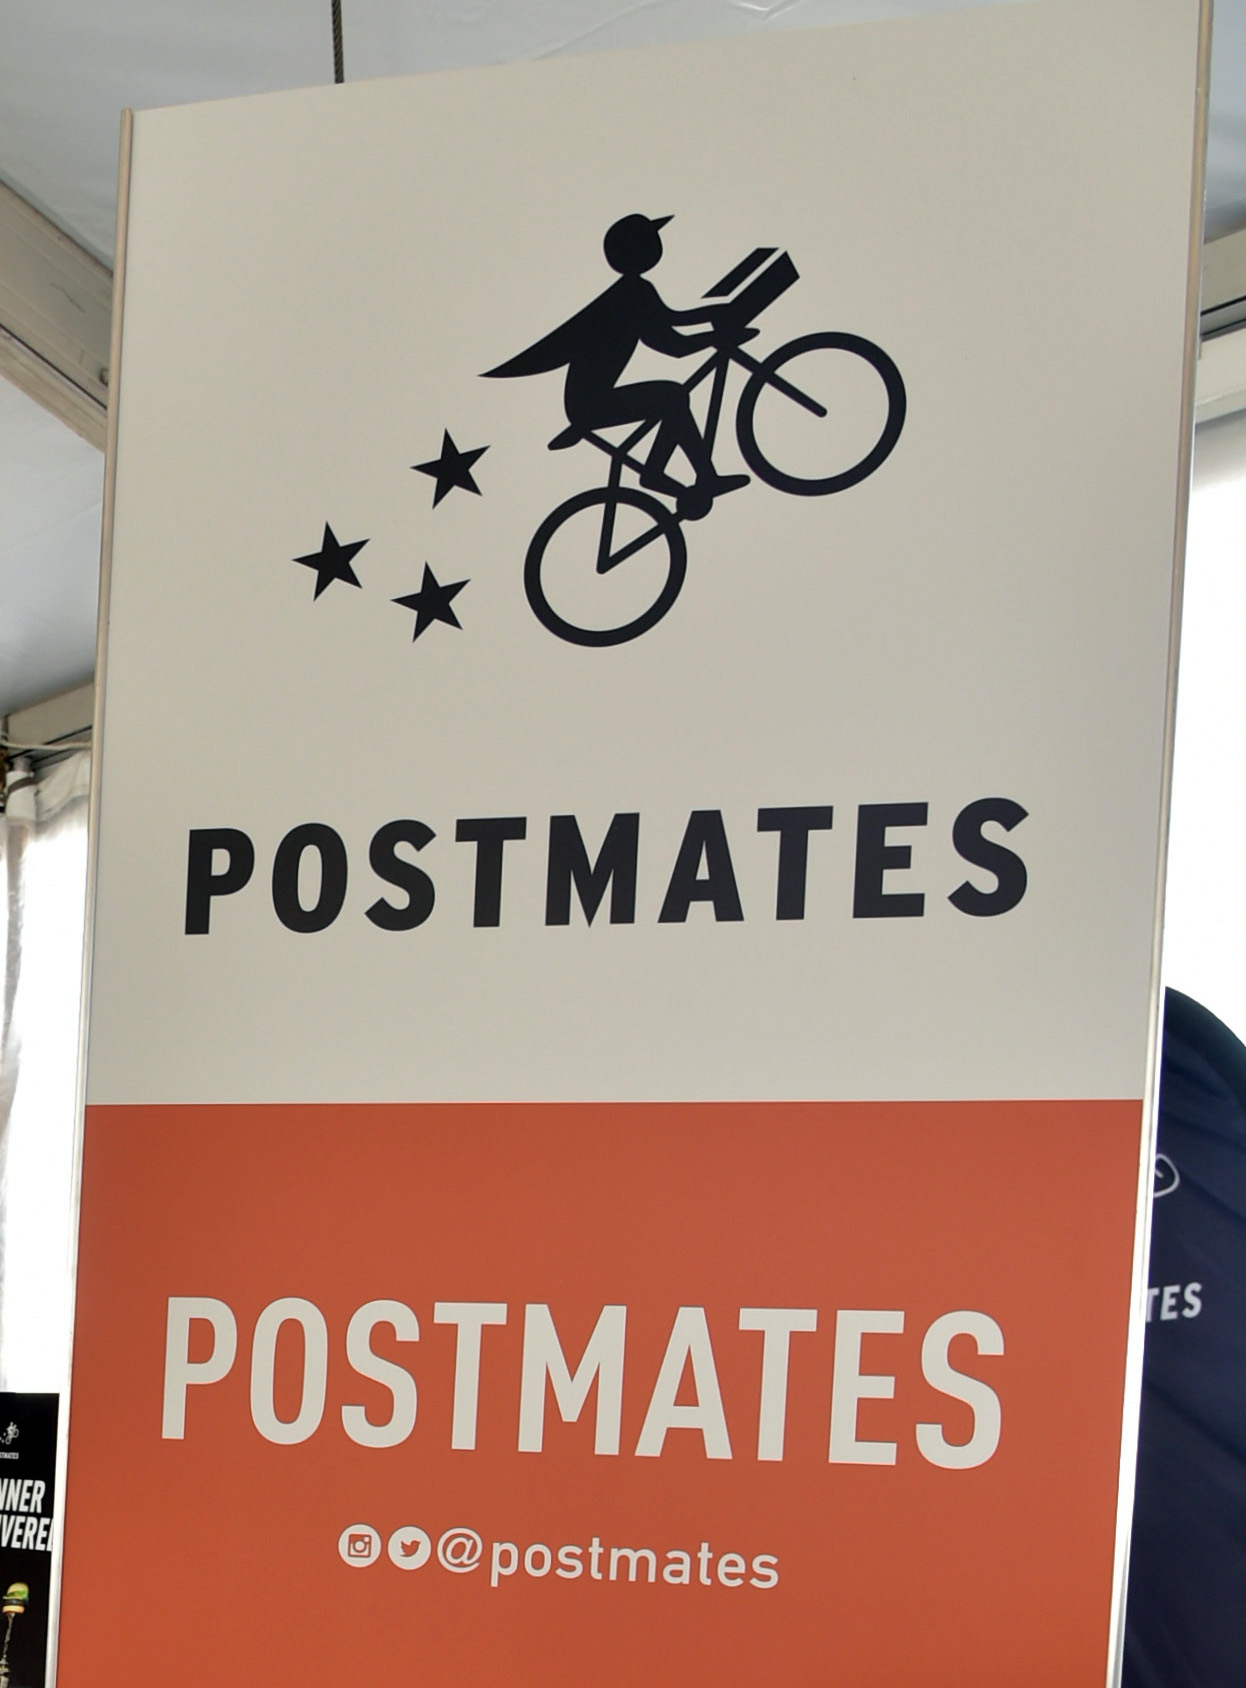 Postmates is a startup specializing in on-demand deliveries from restaurants and stores in major cities.